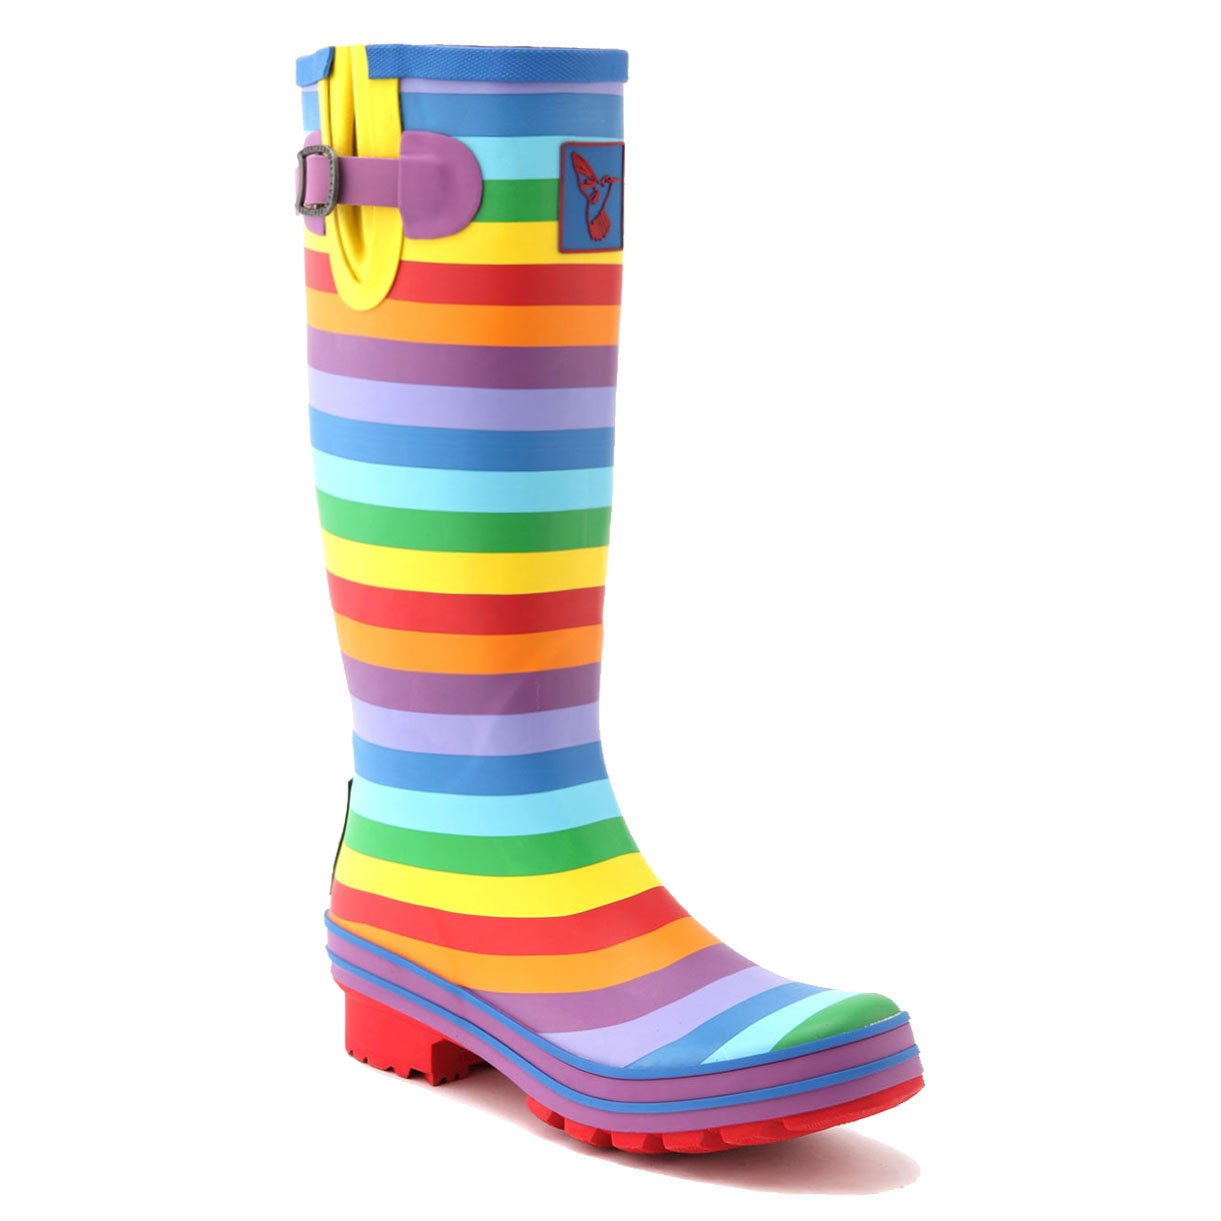 Evercreatures Women's Rain Boots UK Brand Original Tall Rain Boot Gumboots Wellies B008DS6JRO 9 B(M) US / UK7 / EU40|Multicolour